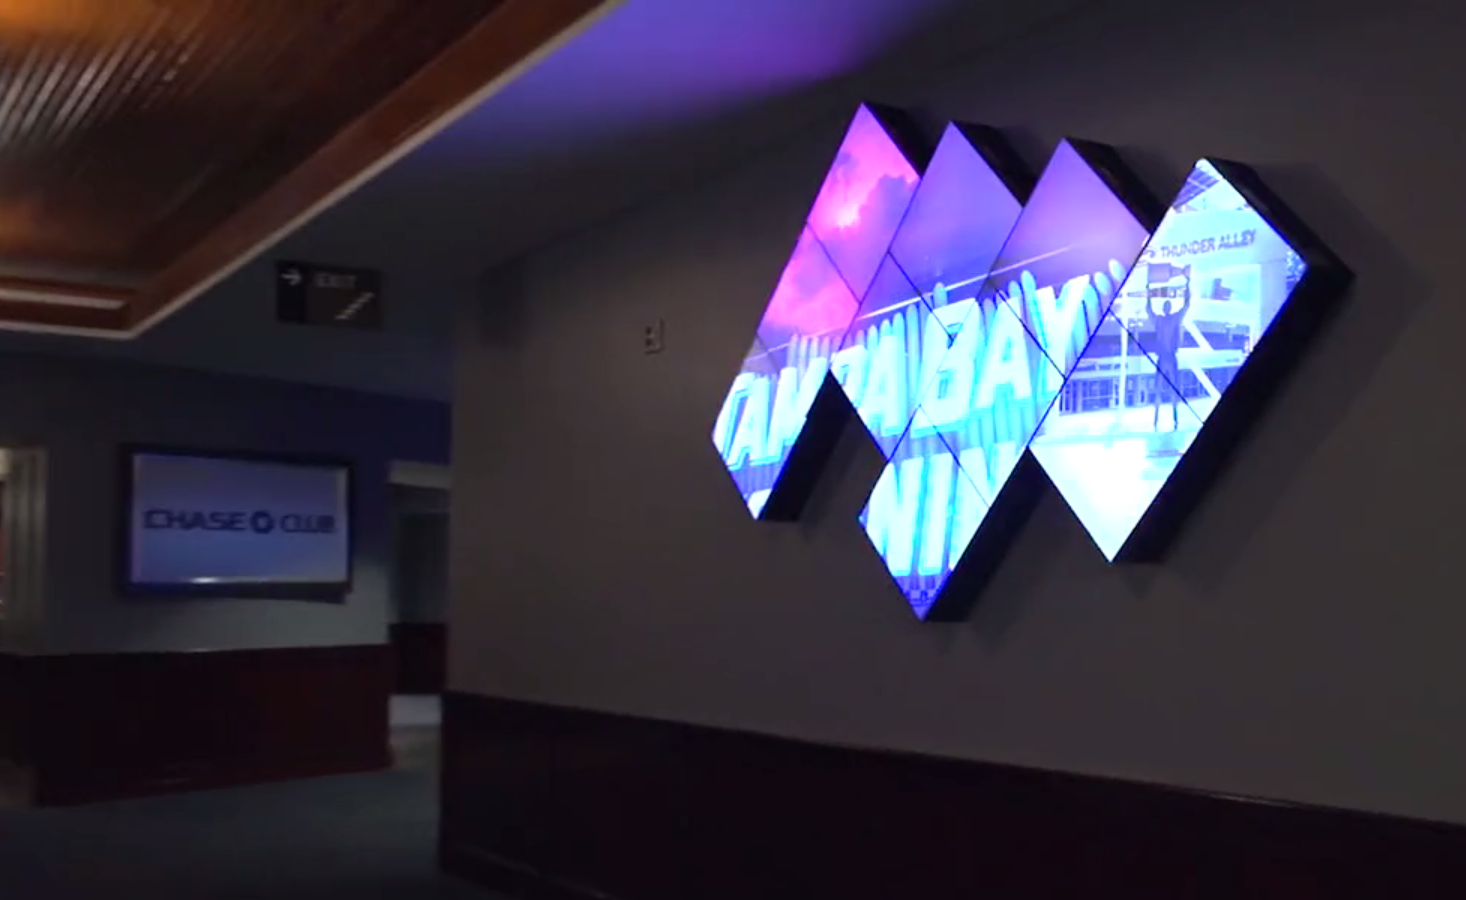 An artistic videowall at the NHL's Amalie Arena at the entrance of the Chase Club. It's part of an upgrade project to enhance the fan out-of-bowl experience with stunning visuals.